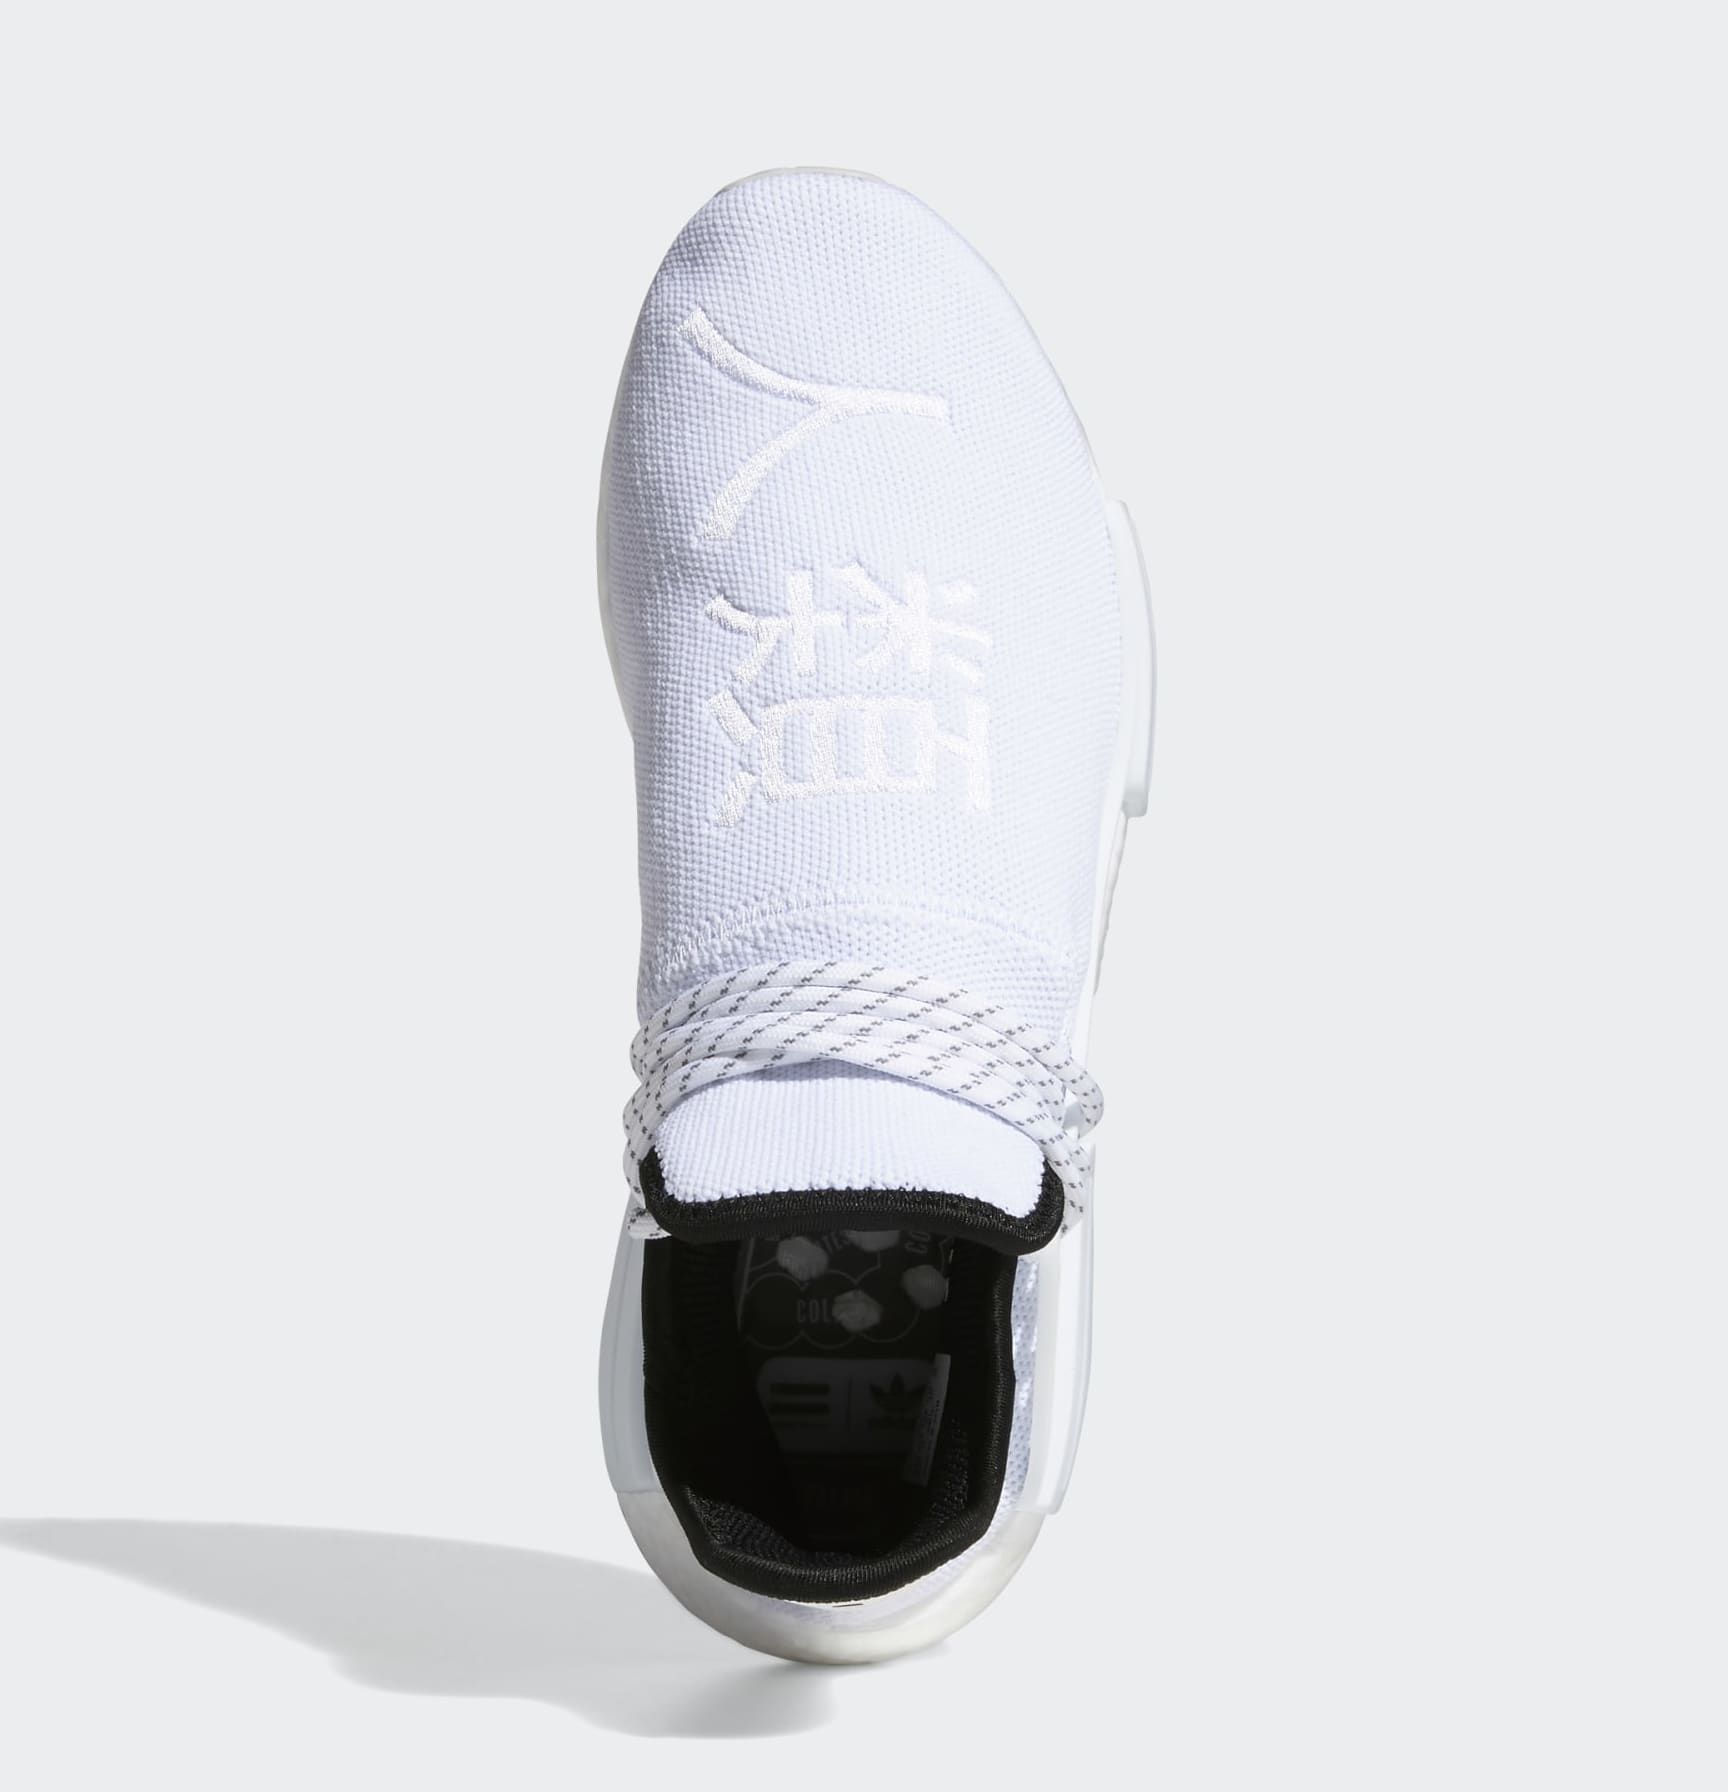 Pharrell Adidas NMD Hu White GY0092 Top